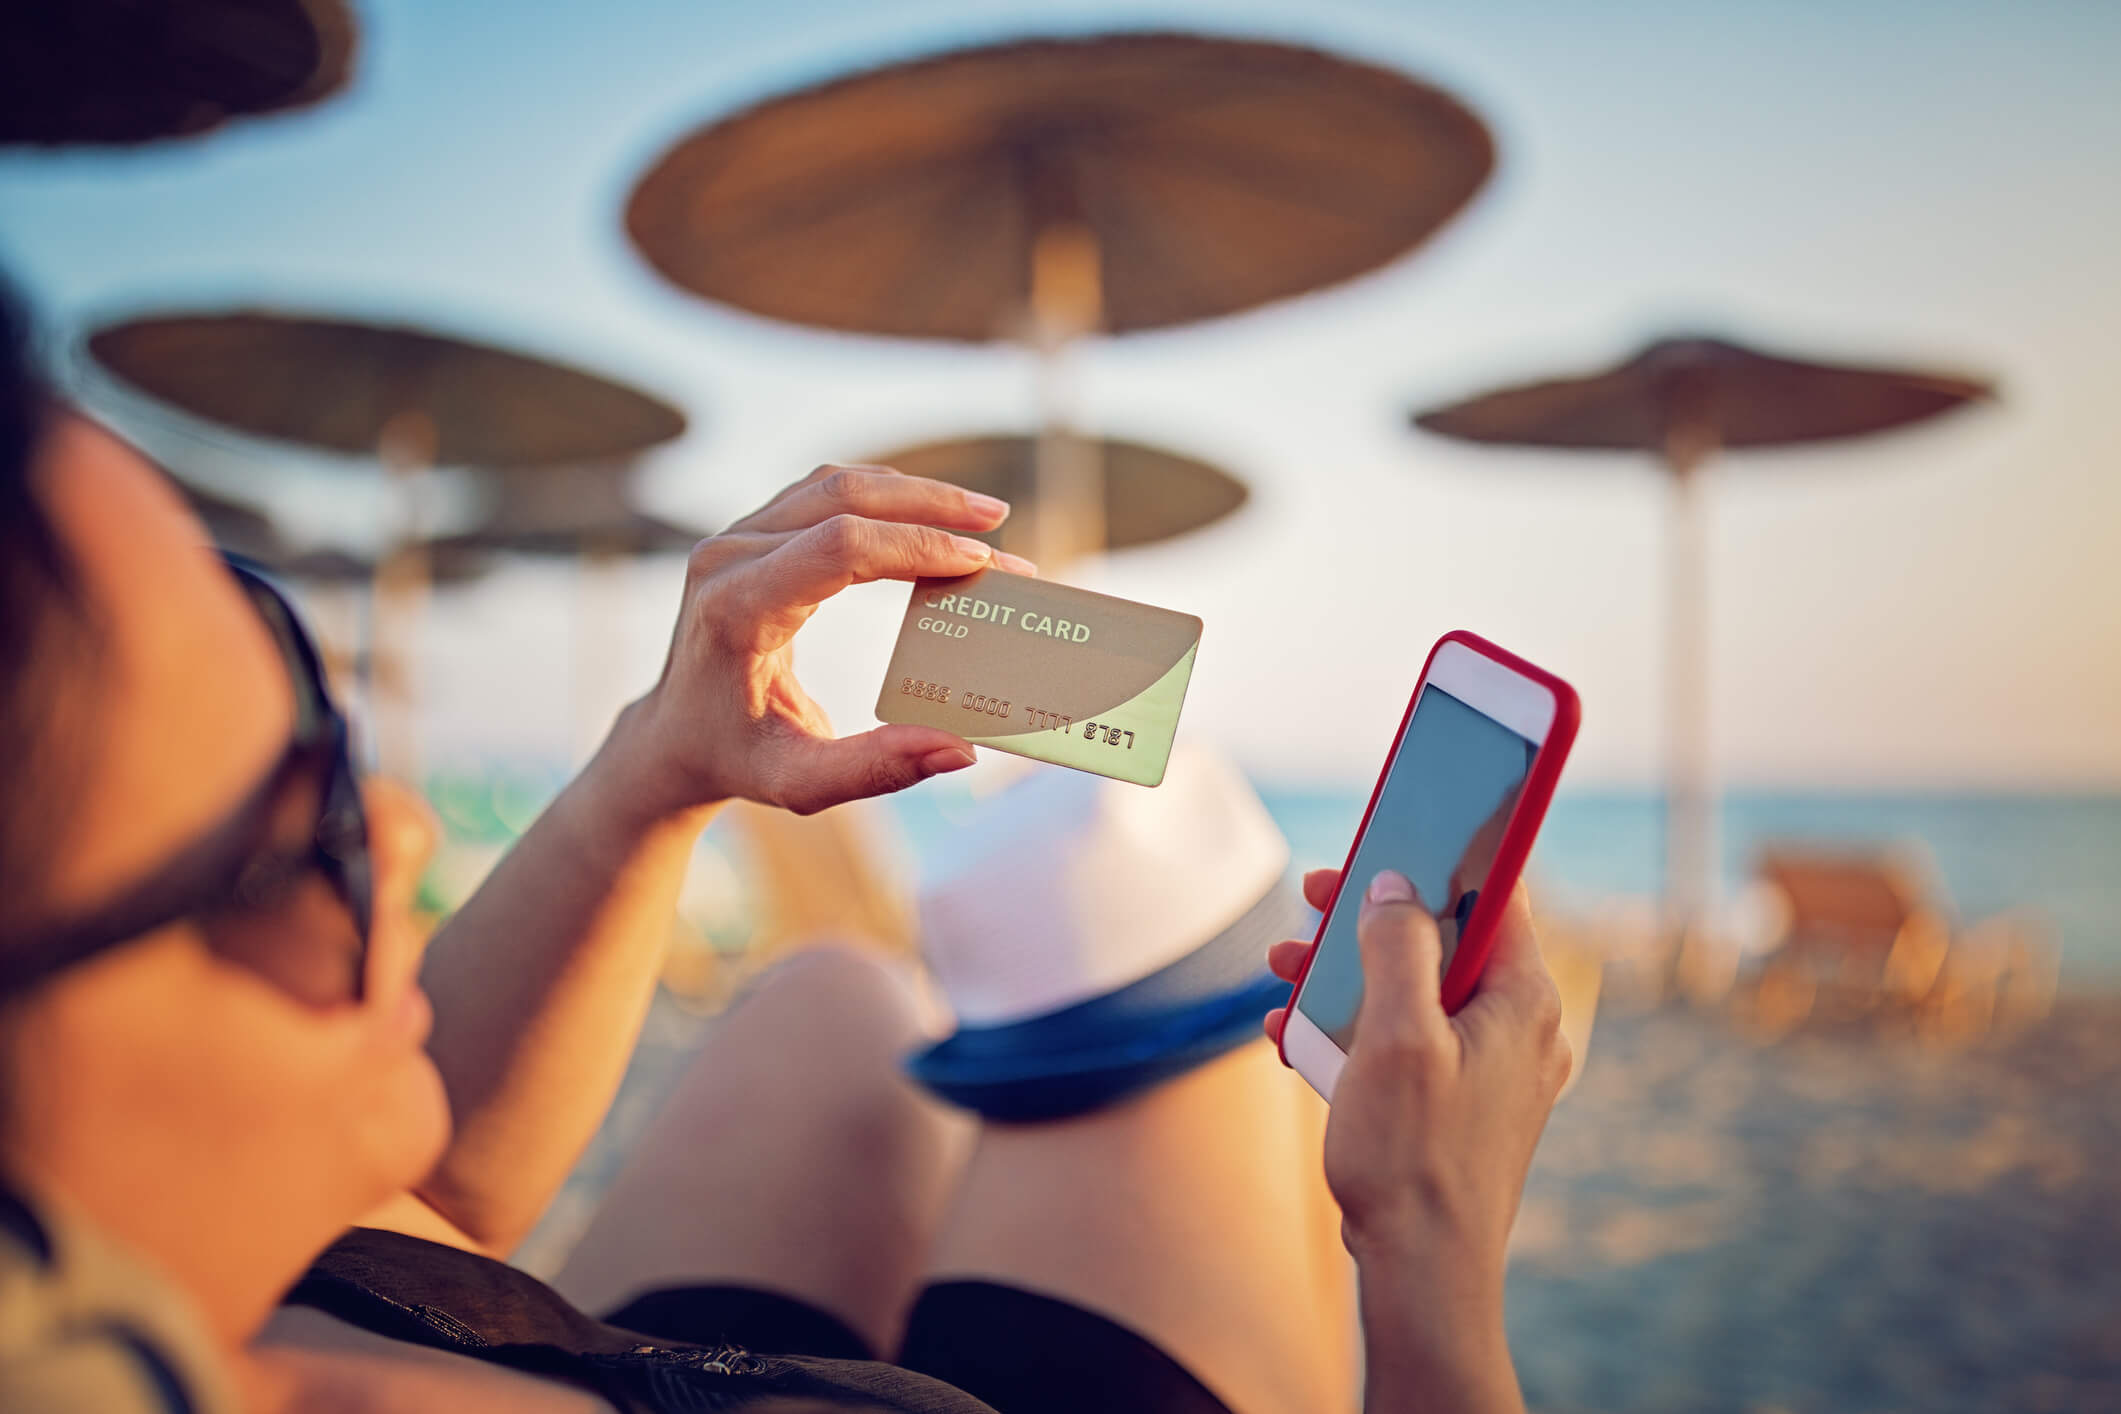 Does paying for a holiday with a credit card add protection?